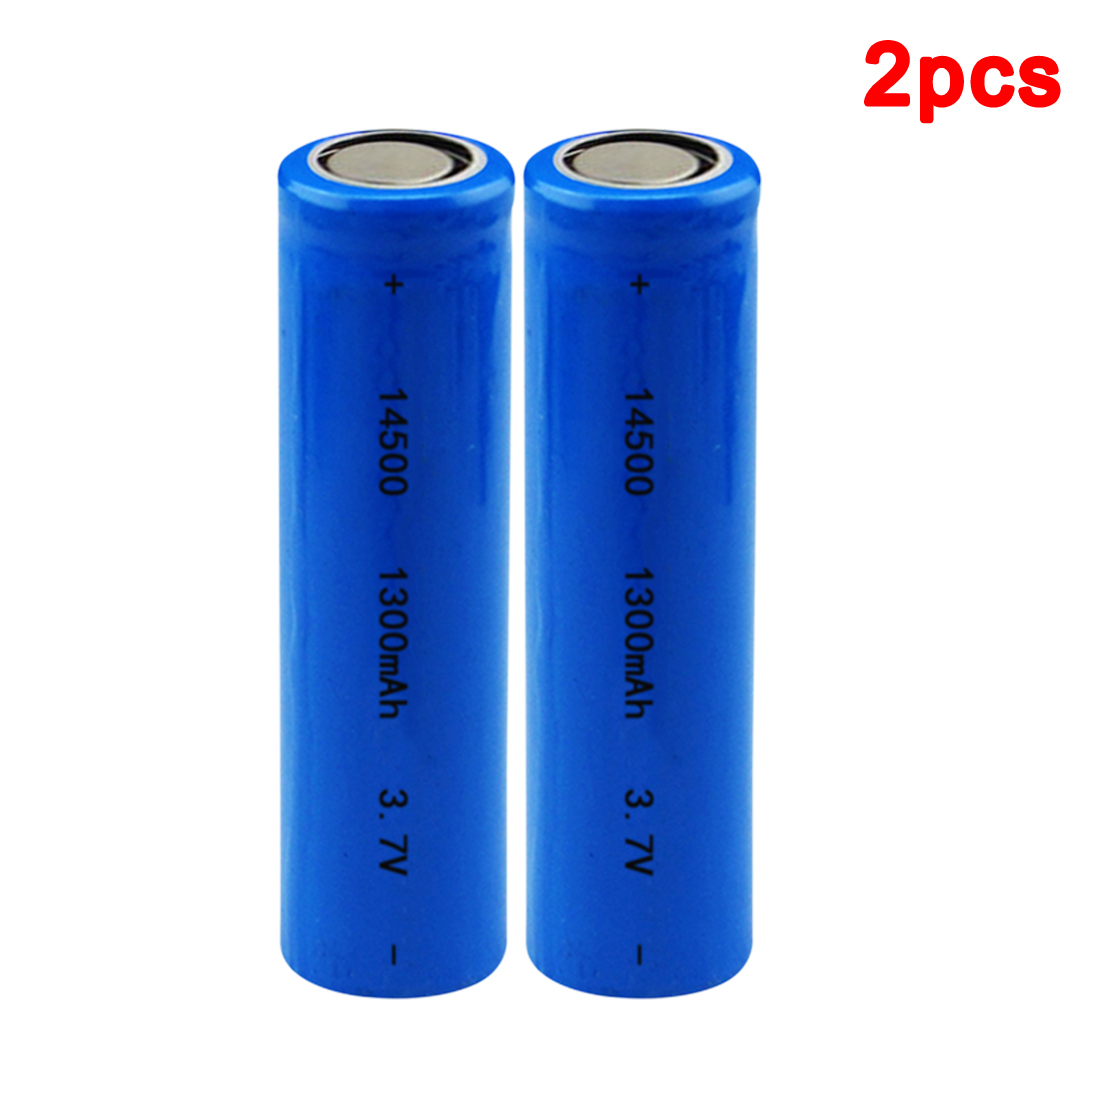 centechia Top Sale 2 pcs High Capacitance <font><b>14500</b></font> Battery 3.7V 1300mAh Rechargeable Battery for Led Flashlight Batery Battery est image